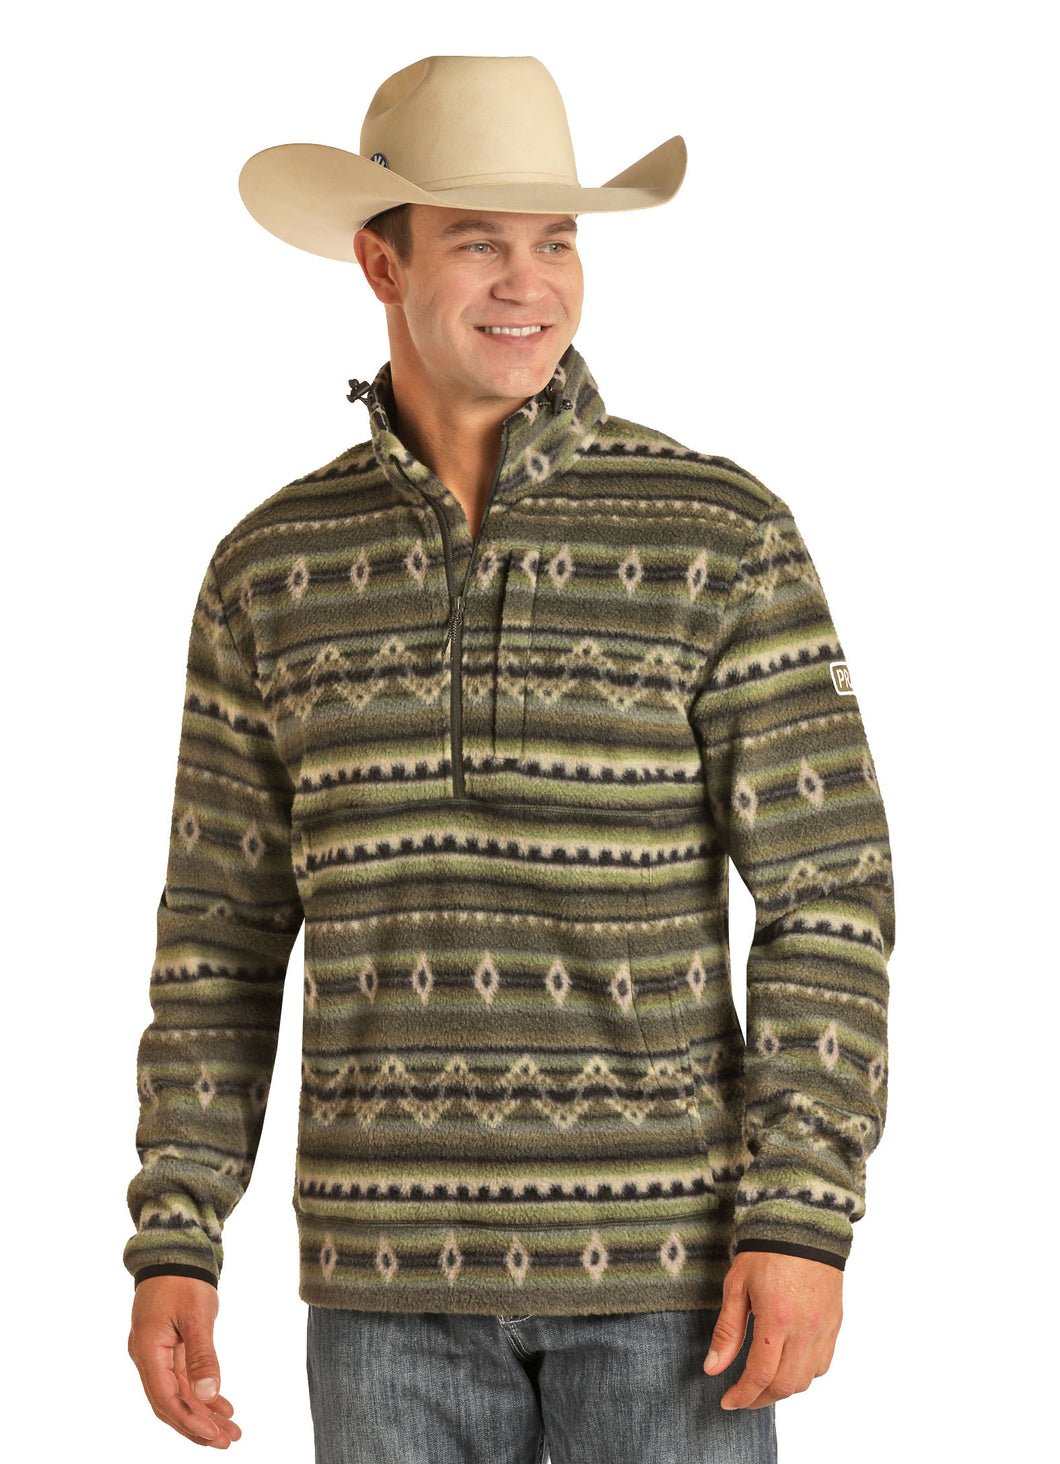 'Powder River' Men's 1/4 Zip Fleece Pullover - Green Aztec